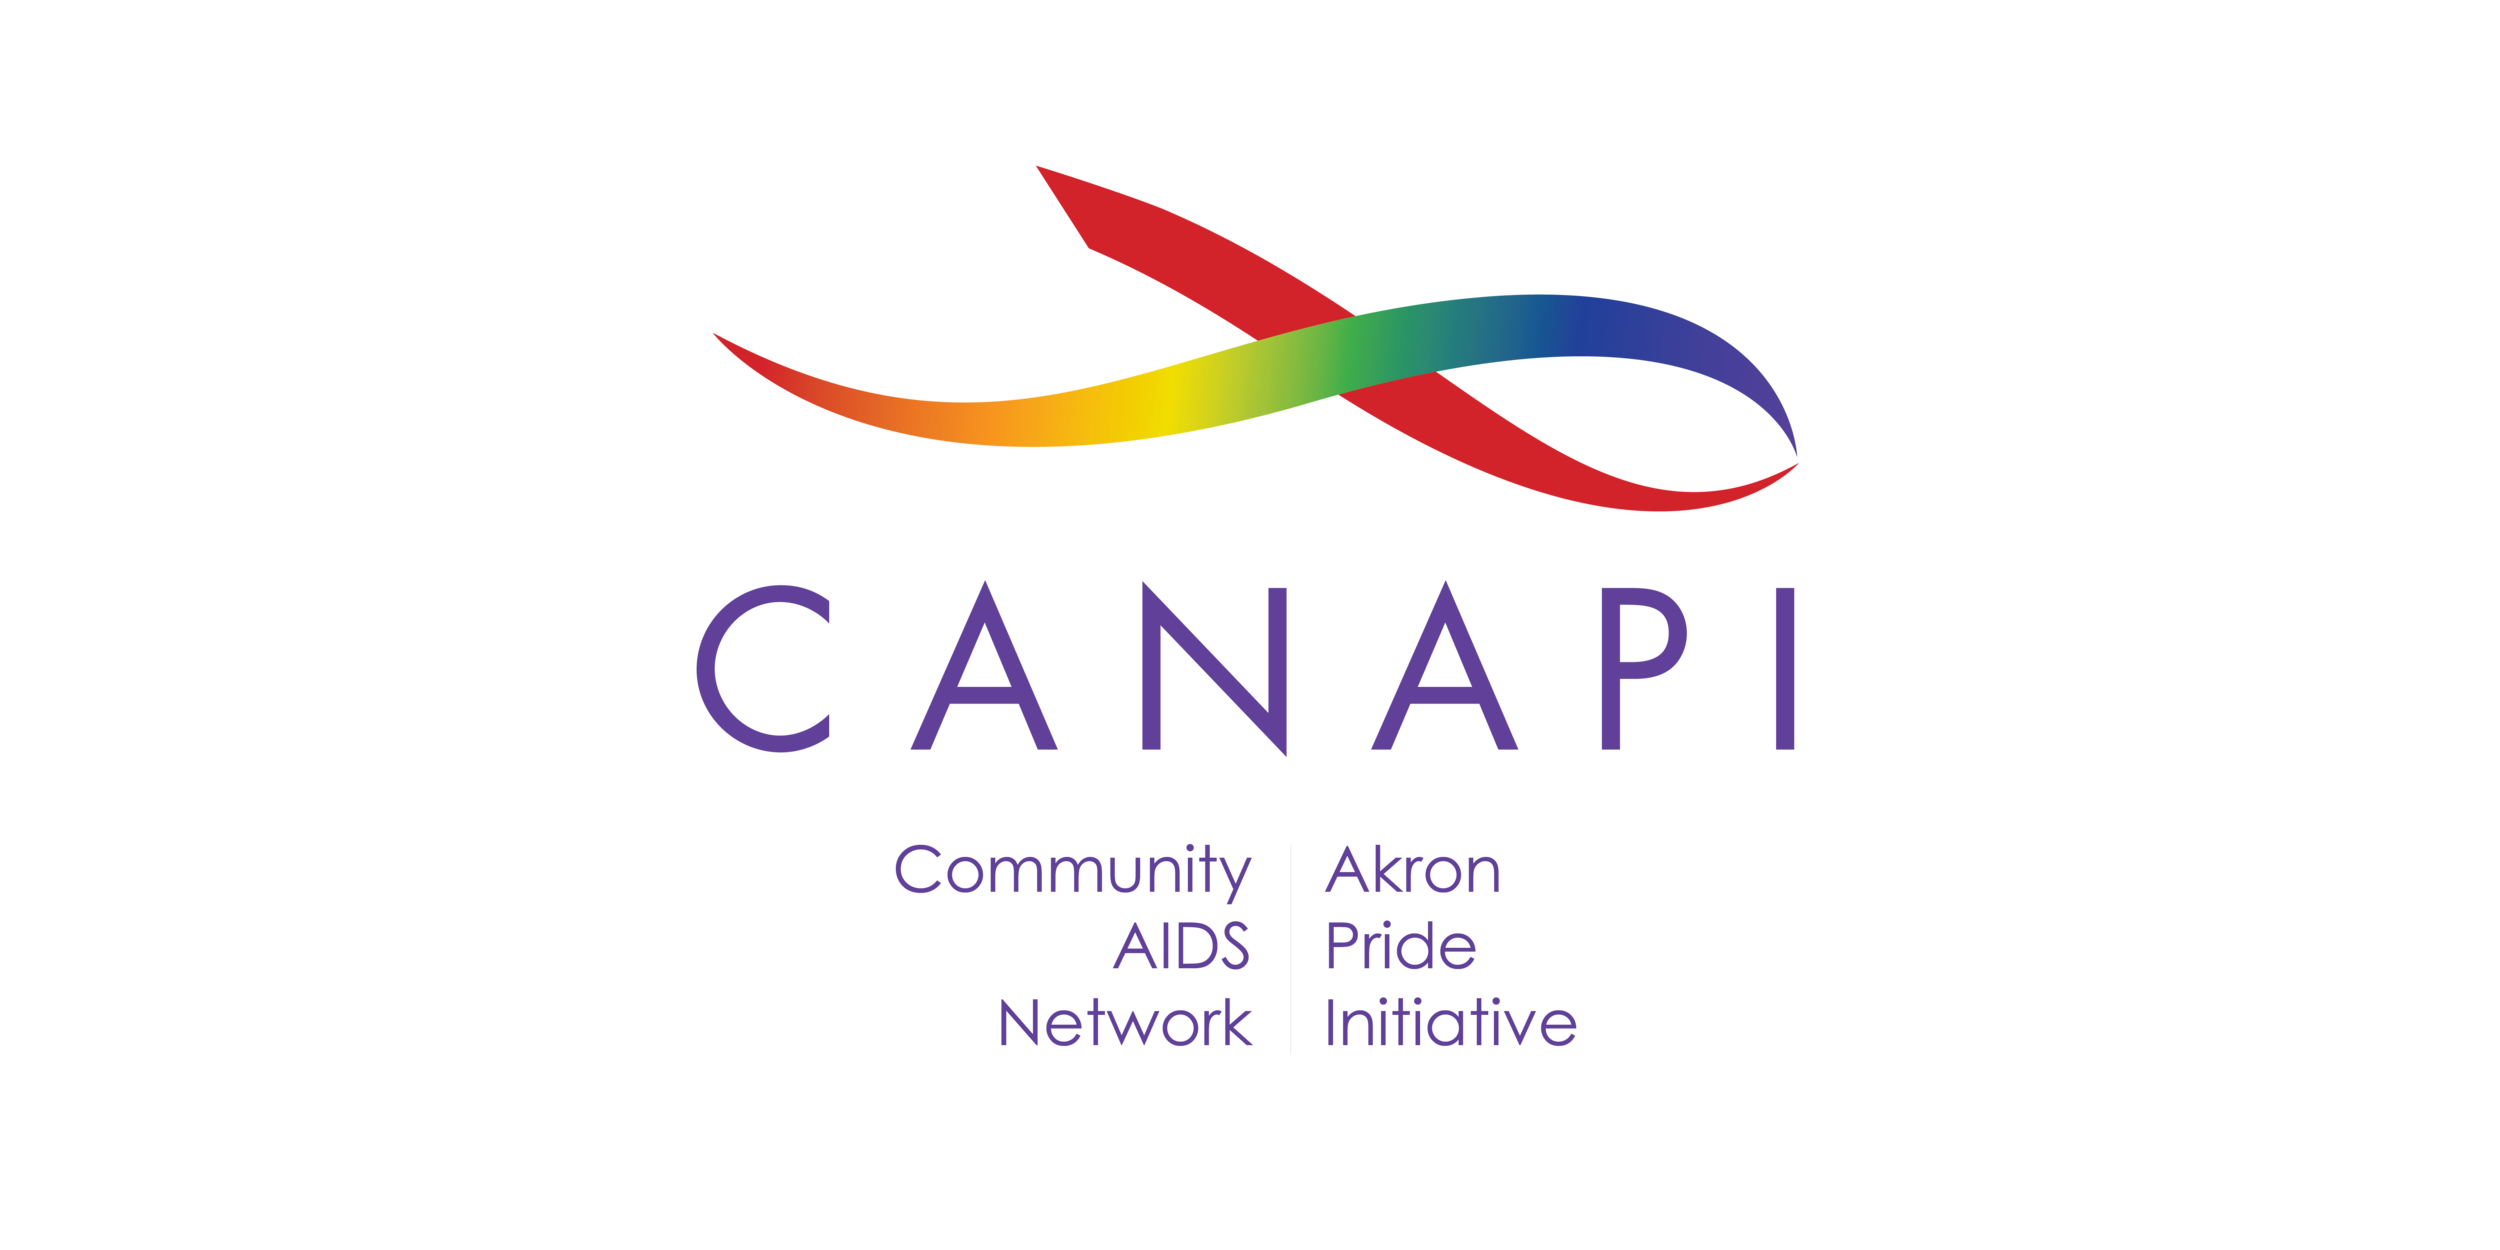 CANAPI_LOGO FULL eventbrite 2_1 ratio-01.png